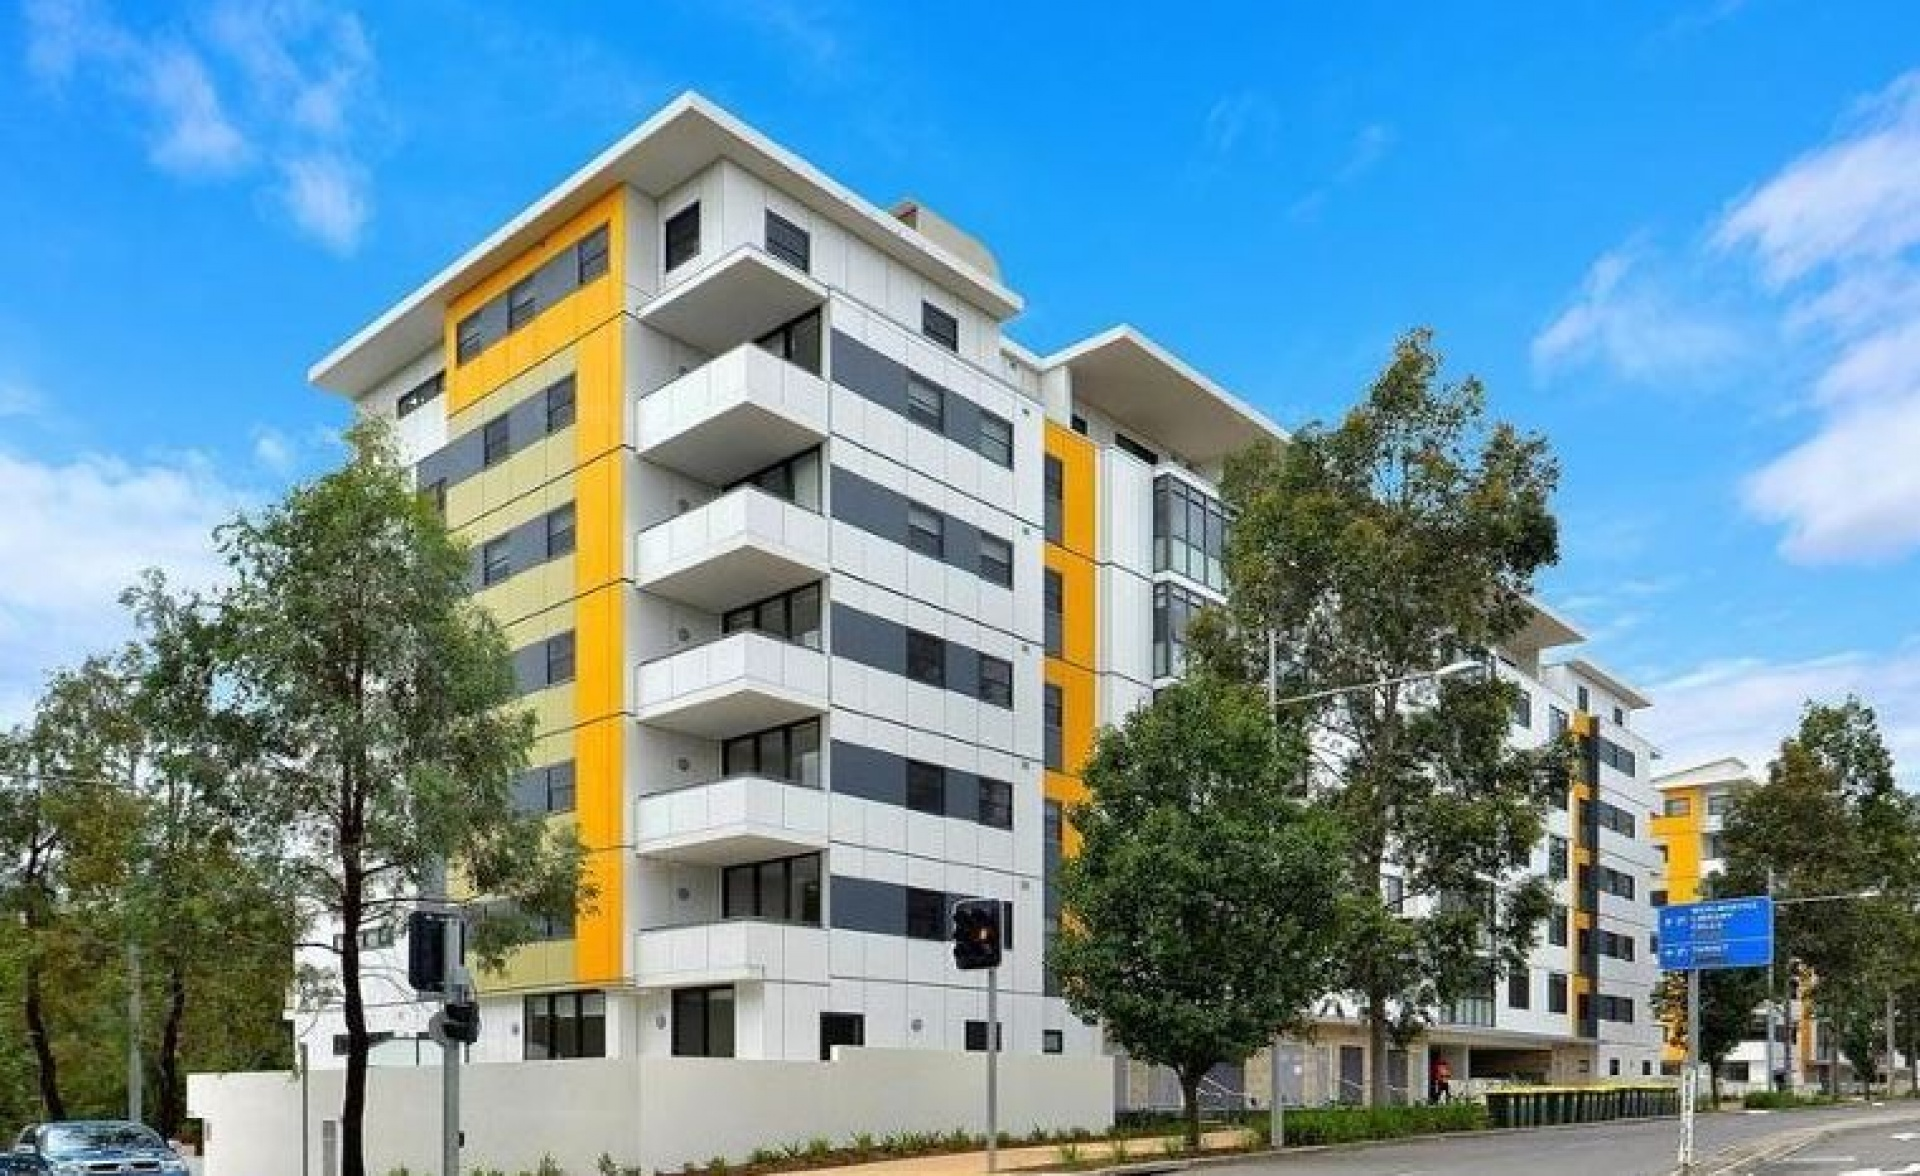 2 Bedrooms, Apartment, Leased, Caddies Boulevard, 2 Bathrooms, Listing ID 1301, Rouse Hill, NSW, Australia,